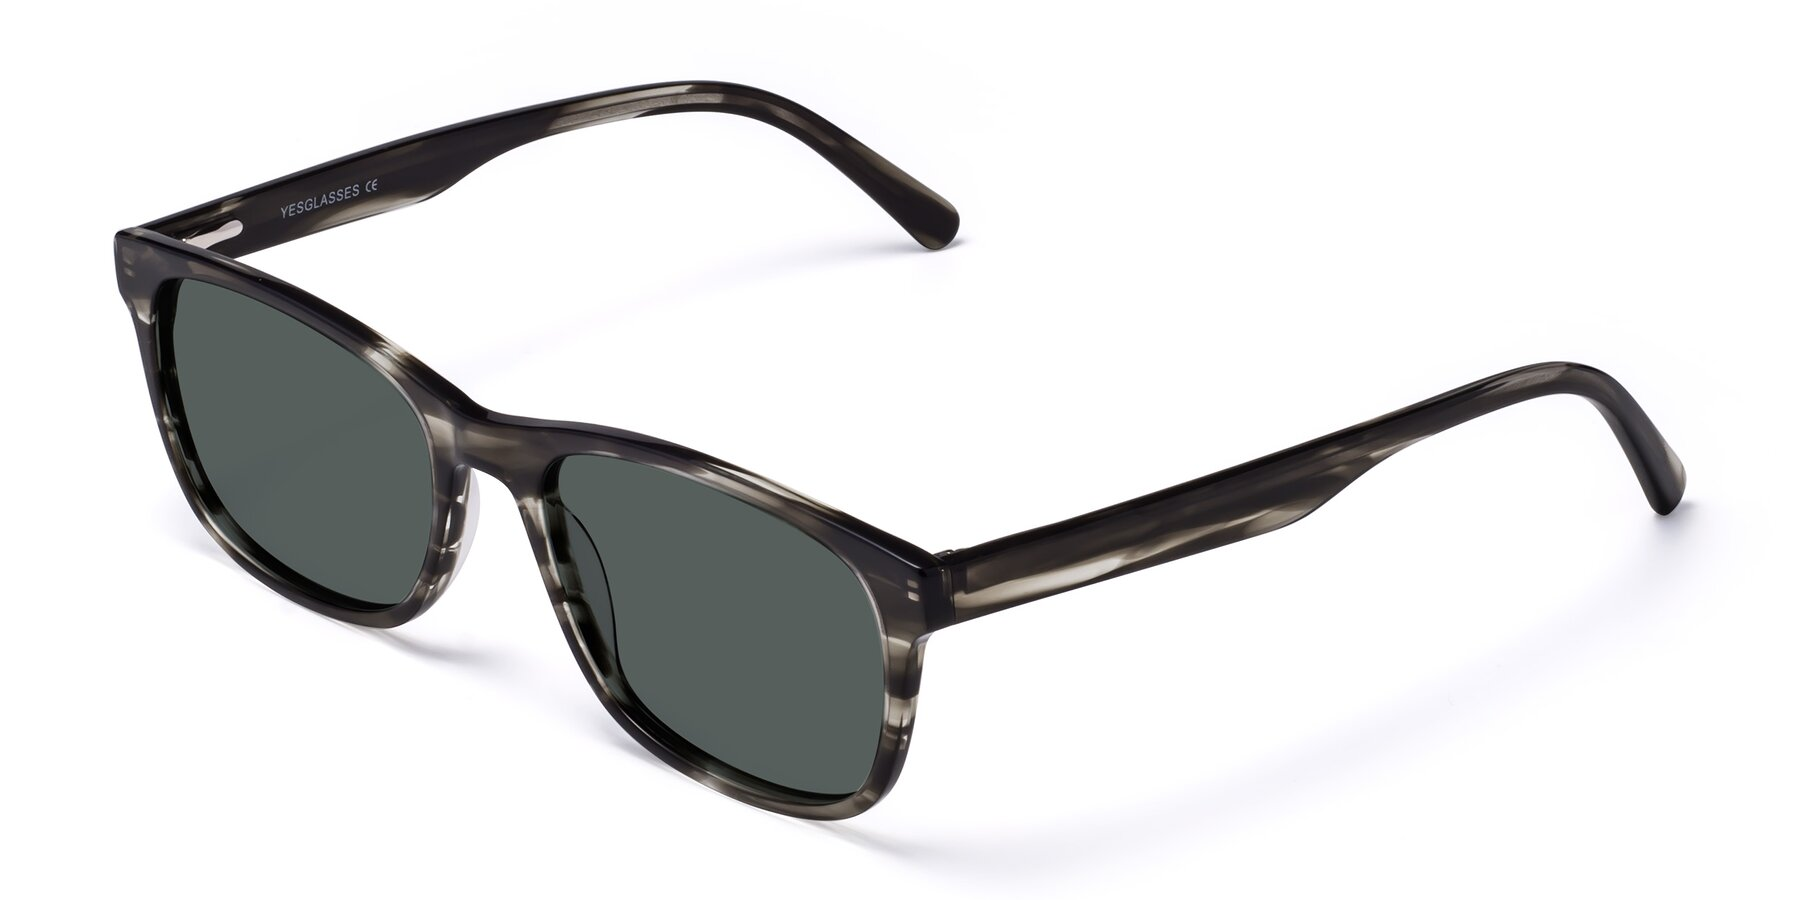 Angle of SR6035 in Gray-Tortoise with Gray Polarized Lenses